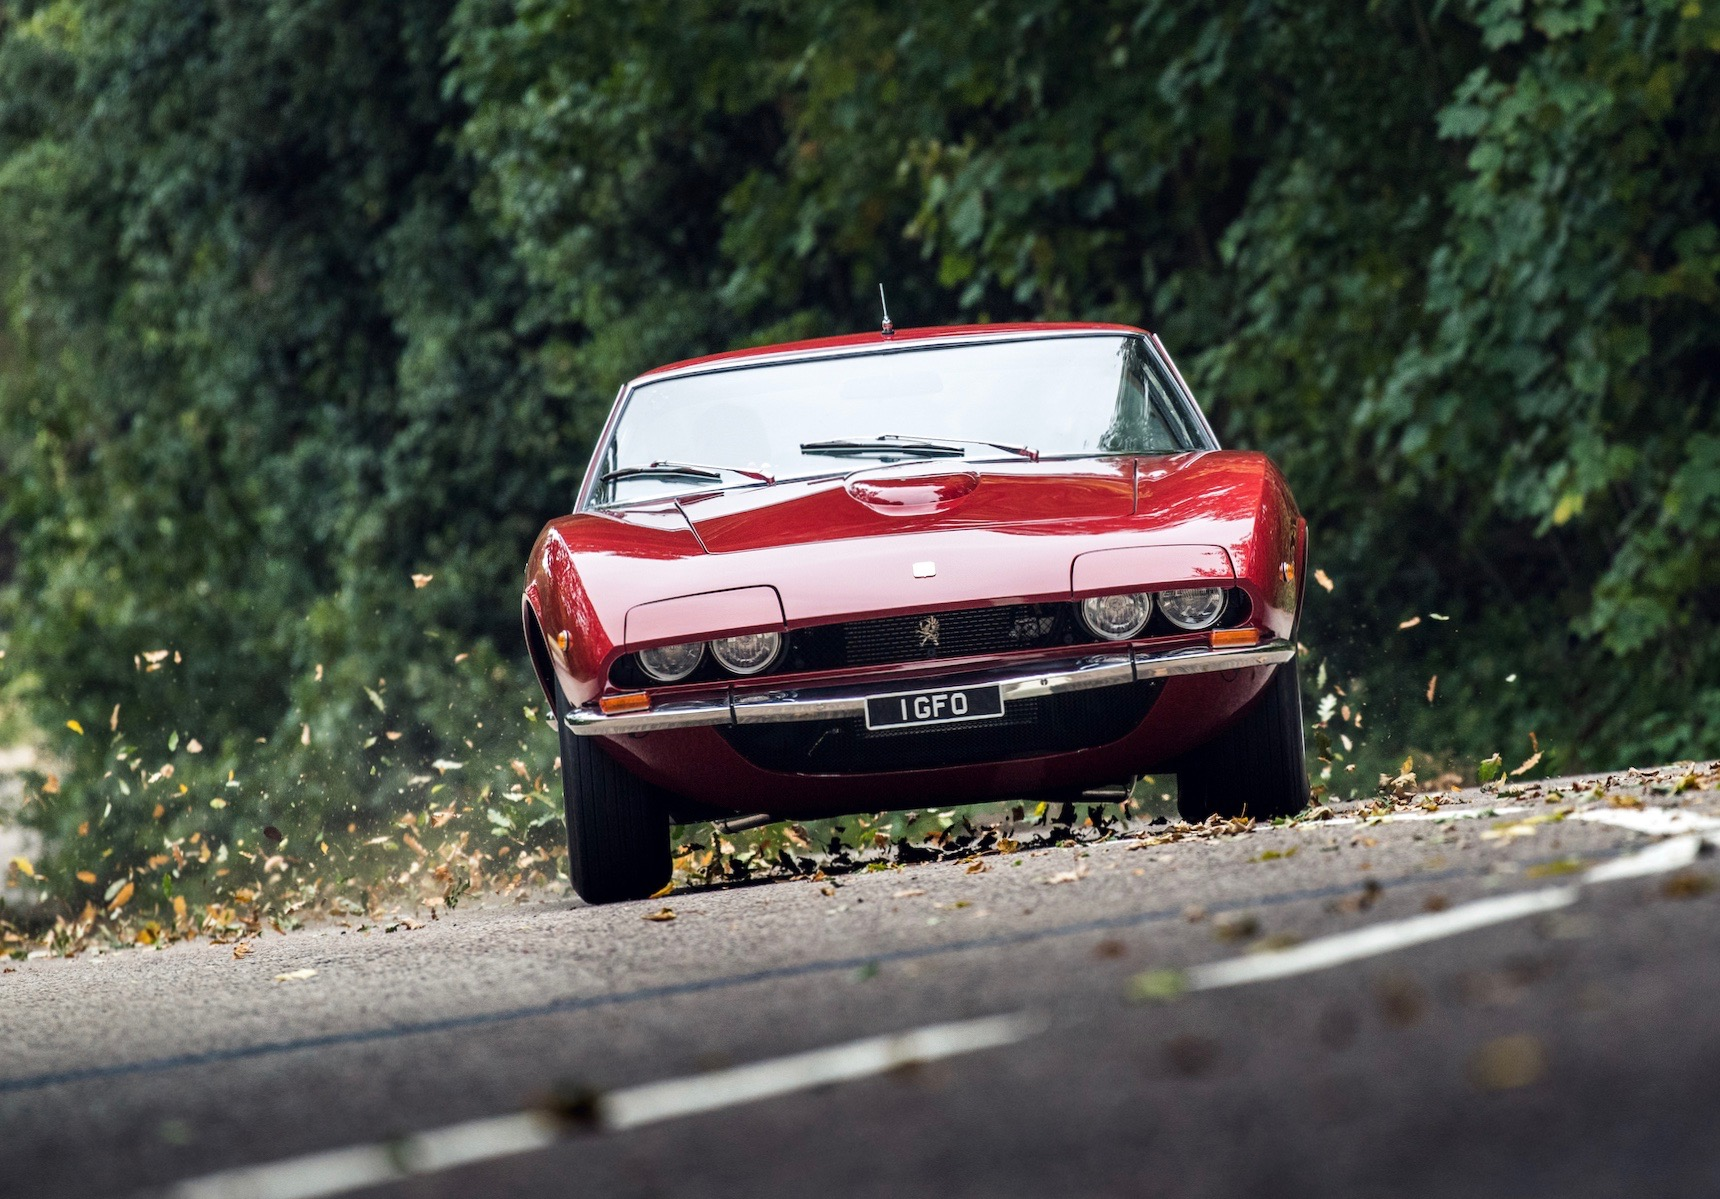 Iso Grifo MK2 Total restoration with engine and handling upgrades.  Photo by       JAYSON FONG